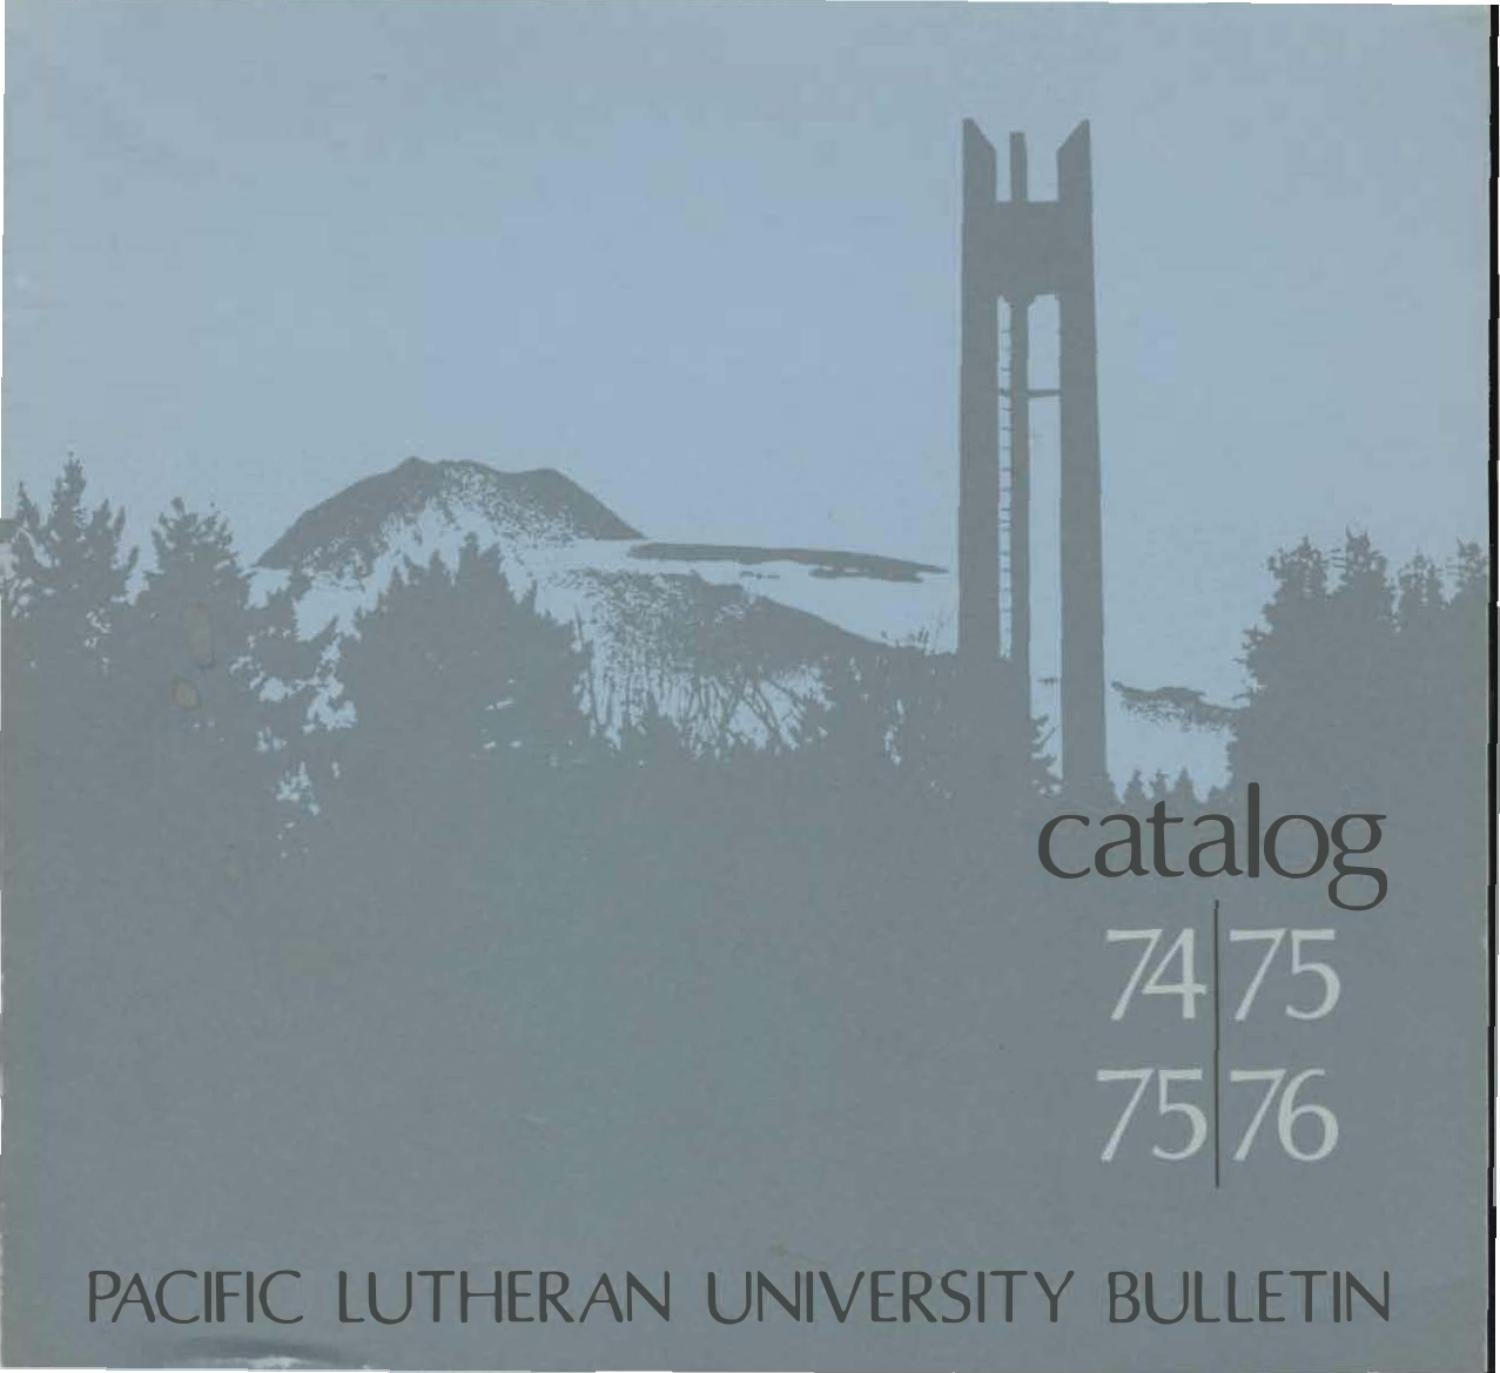 1974 1975 1975 1976 Catalog by Pacific Lutheran University Archives issuu